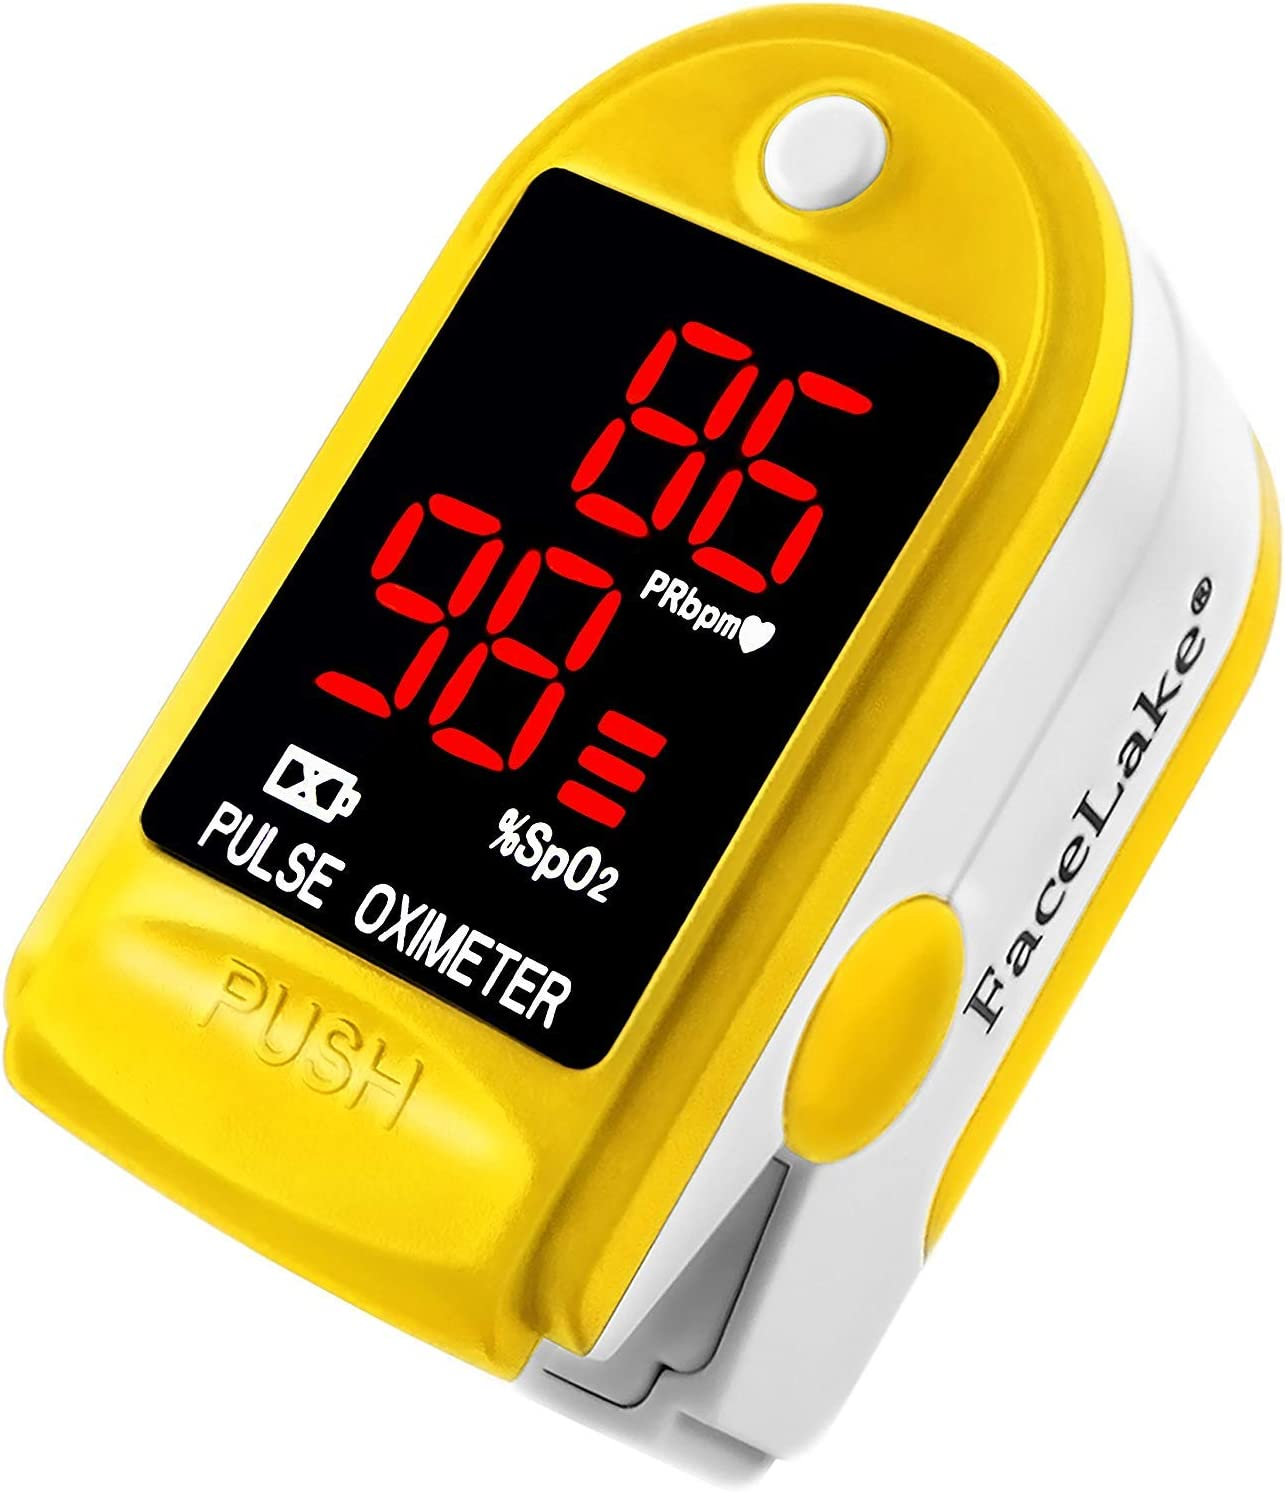 FaceLake Pulse Oximeter Blood Oxygen Saturation Monitor, Neck Wrist Cord, Carrying Case and Batteries Included, Yellow